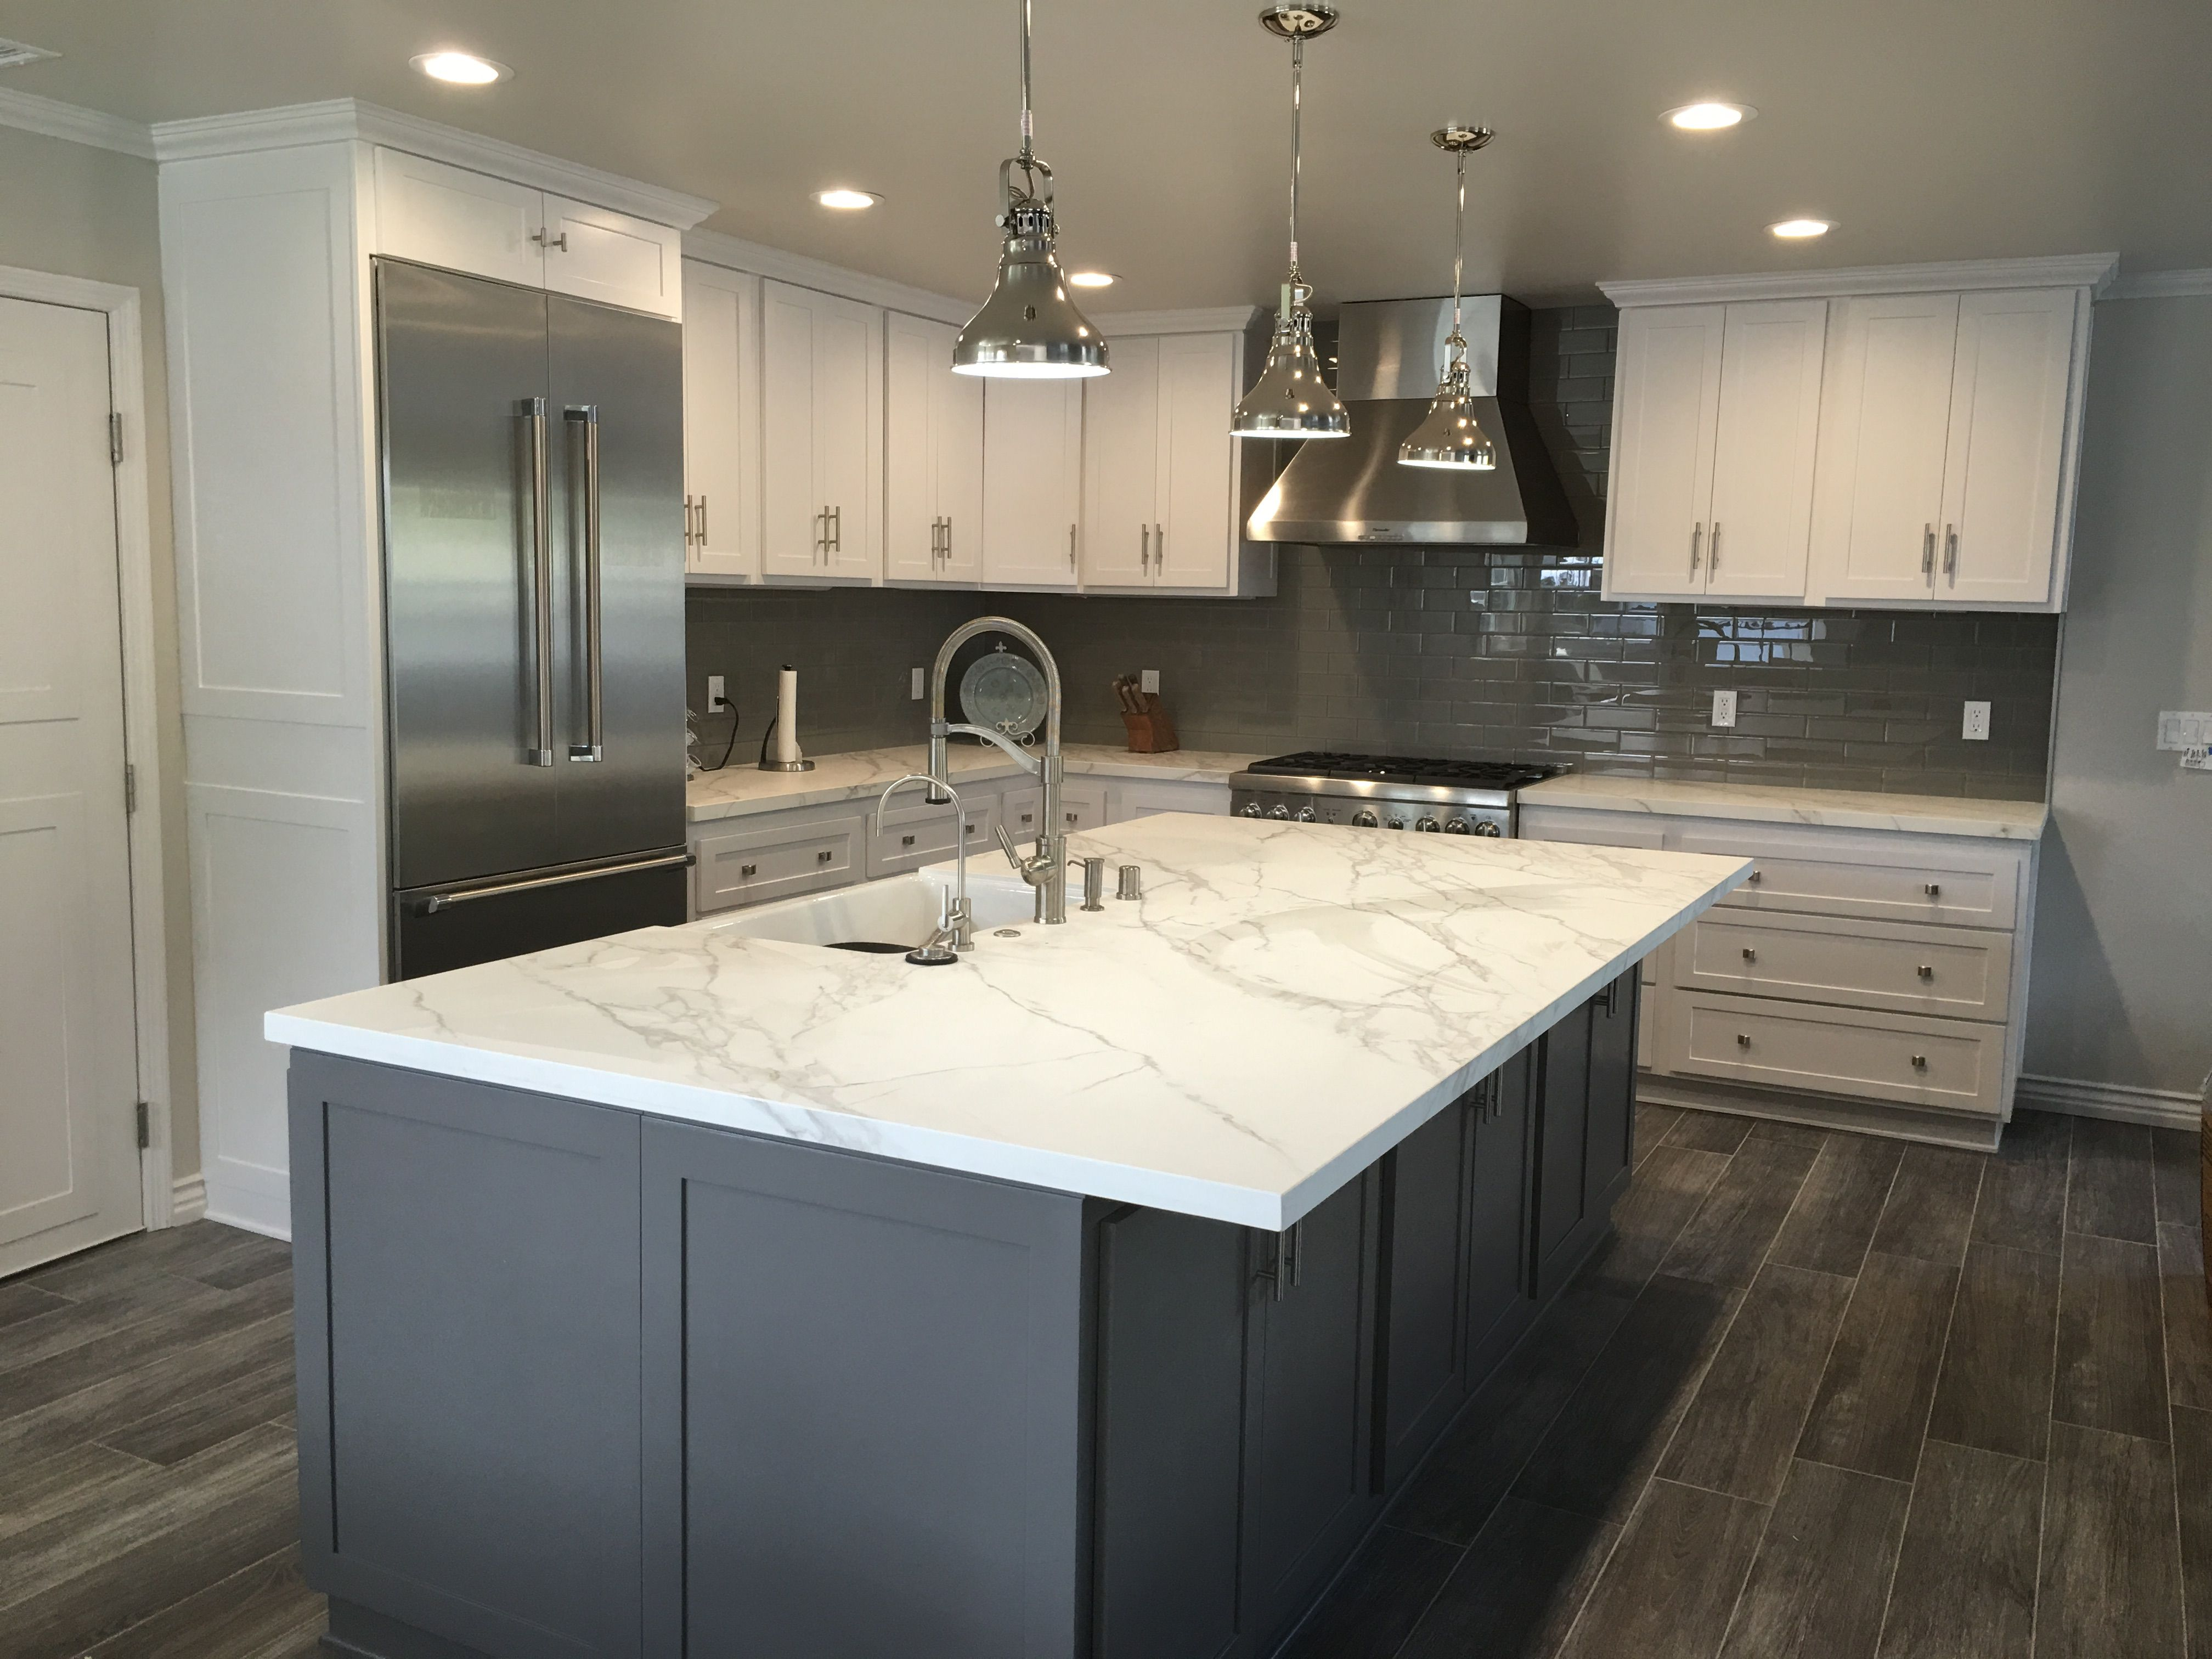 Neolith Kitchen Countertop Fabrication